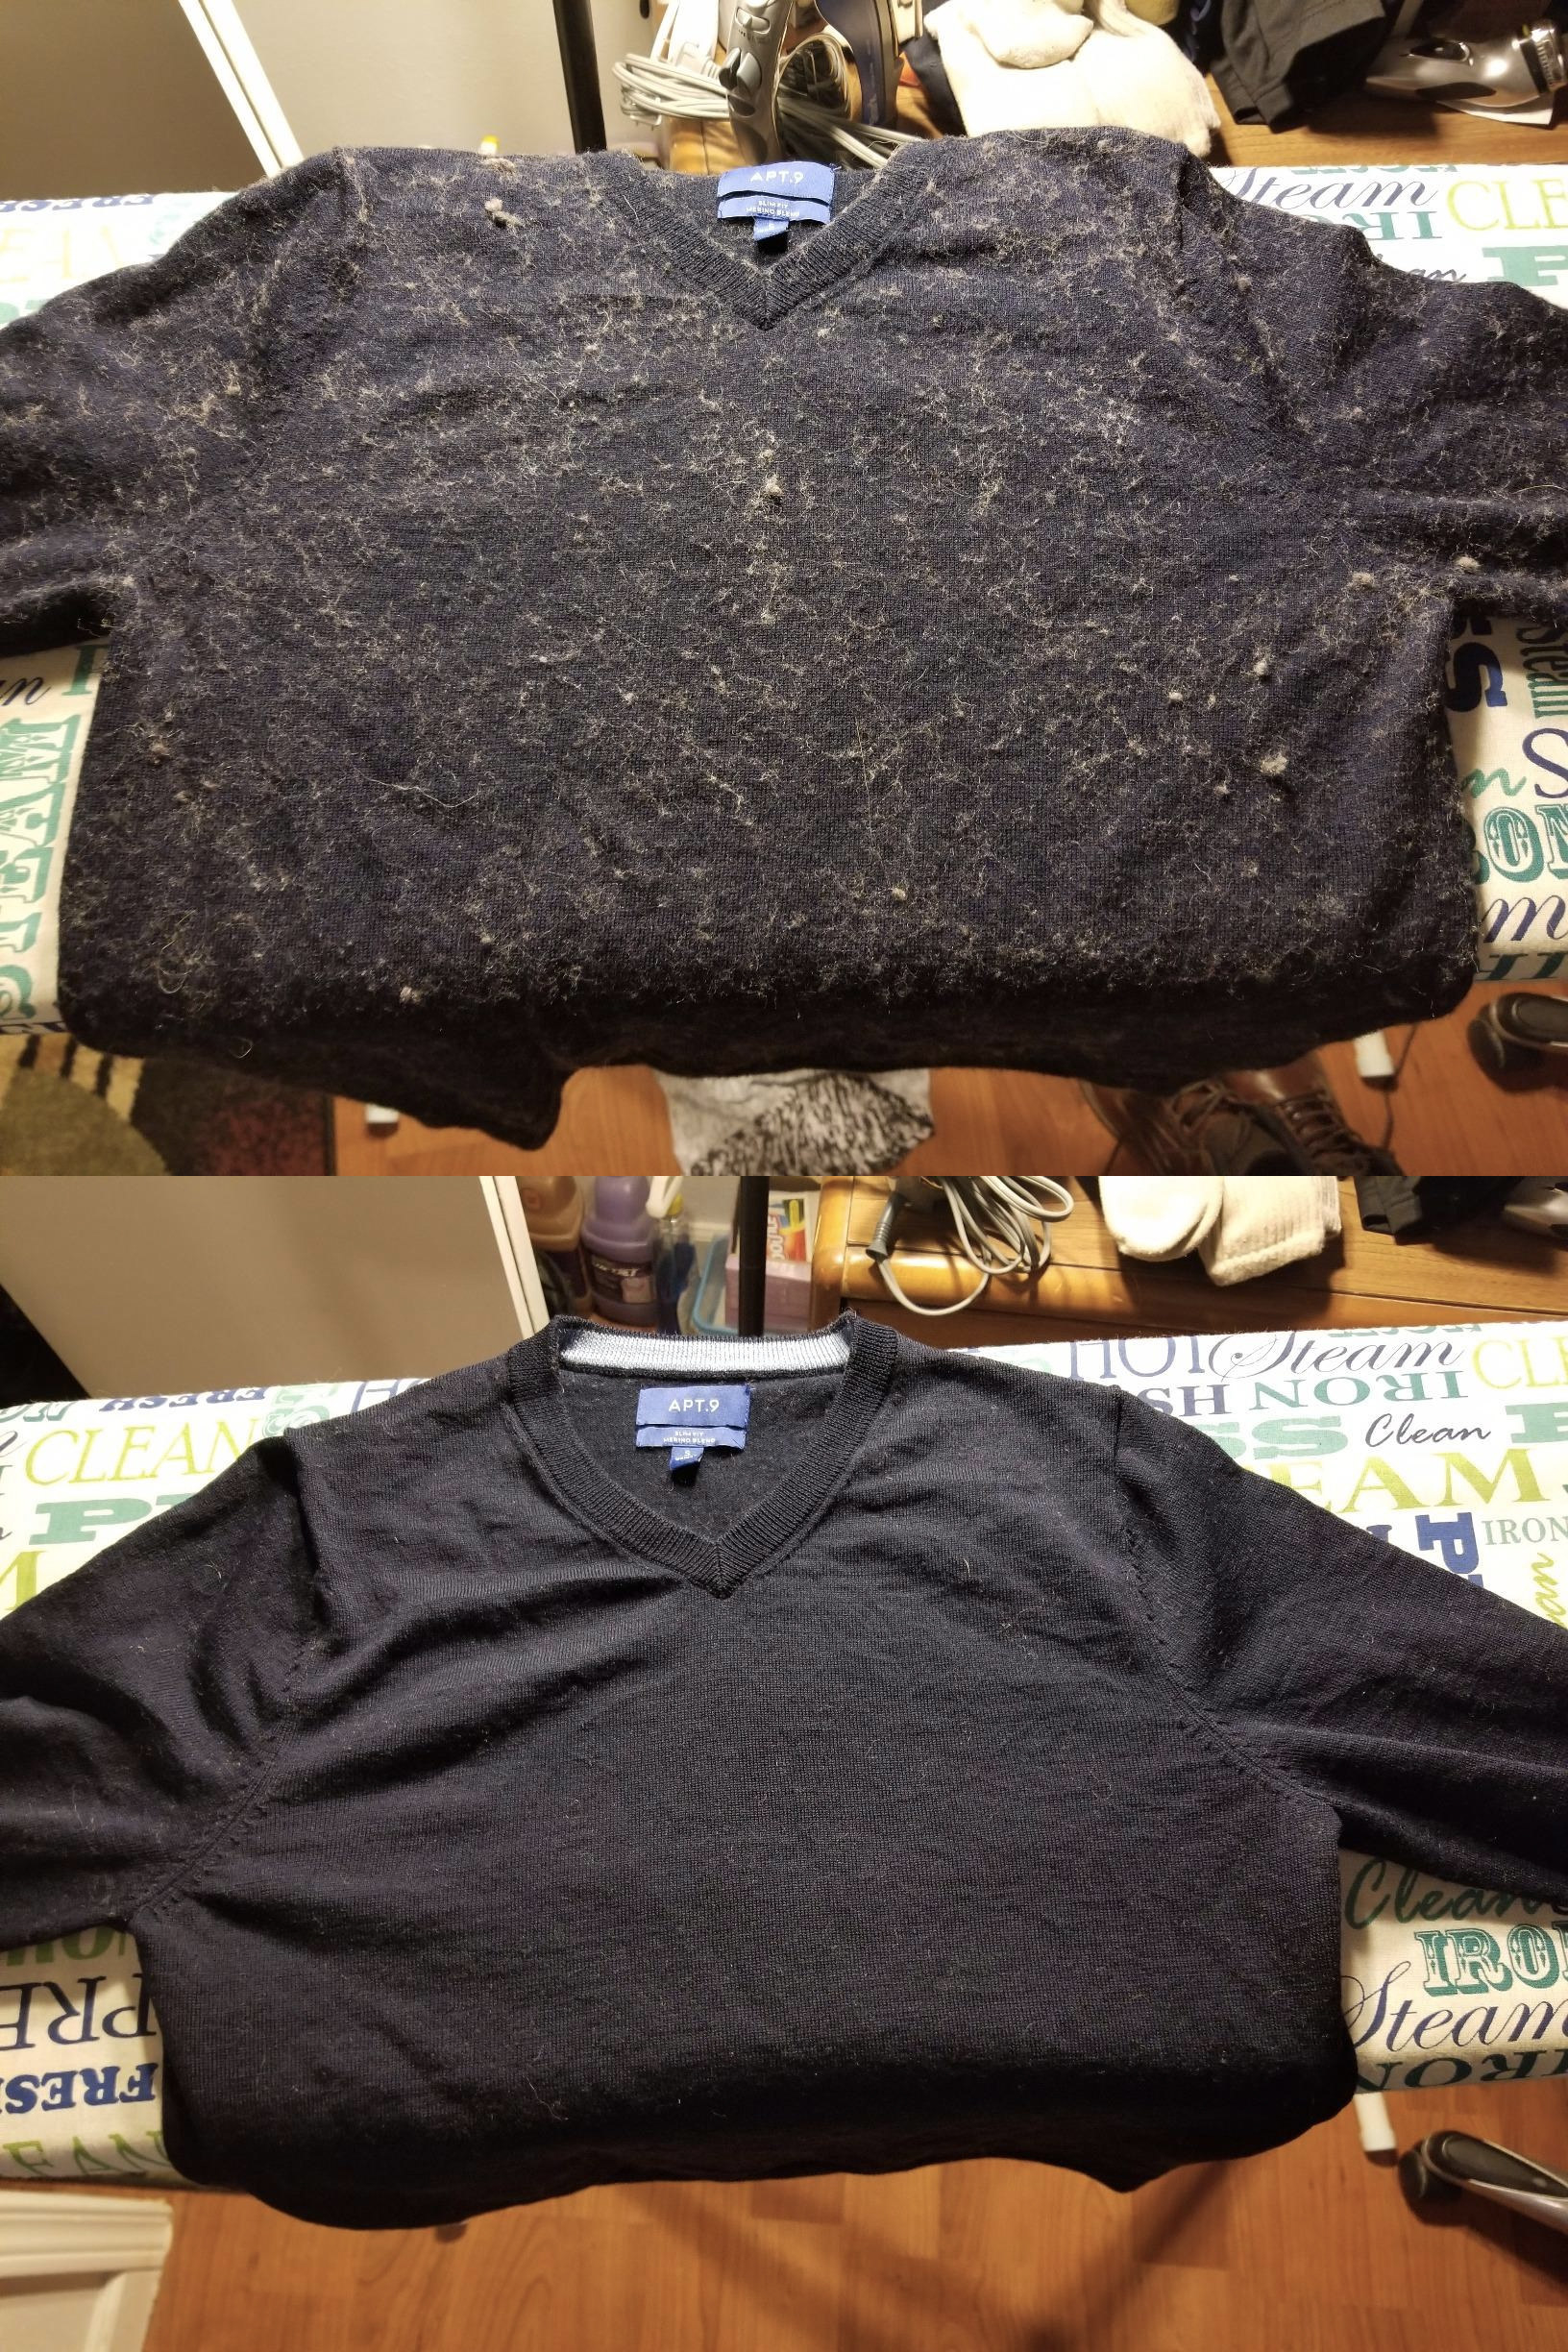 Before: a reviewer's navy sweater covered in grey-ish pills and fuzz; After: the same sweater, now looking brand new with no pills or fuzz in sight